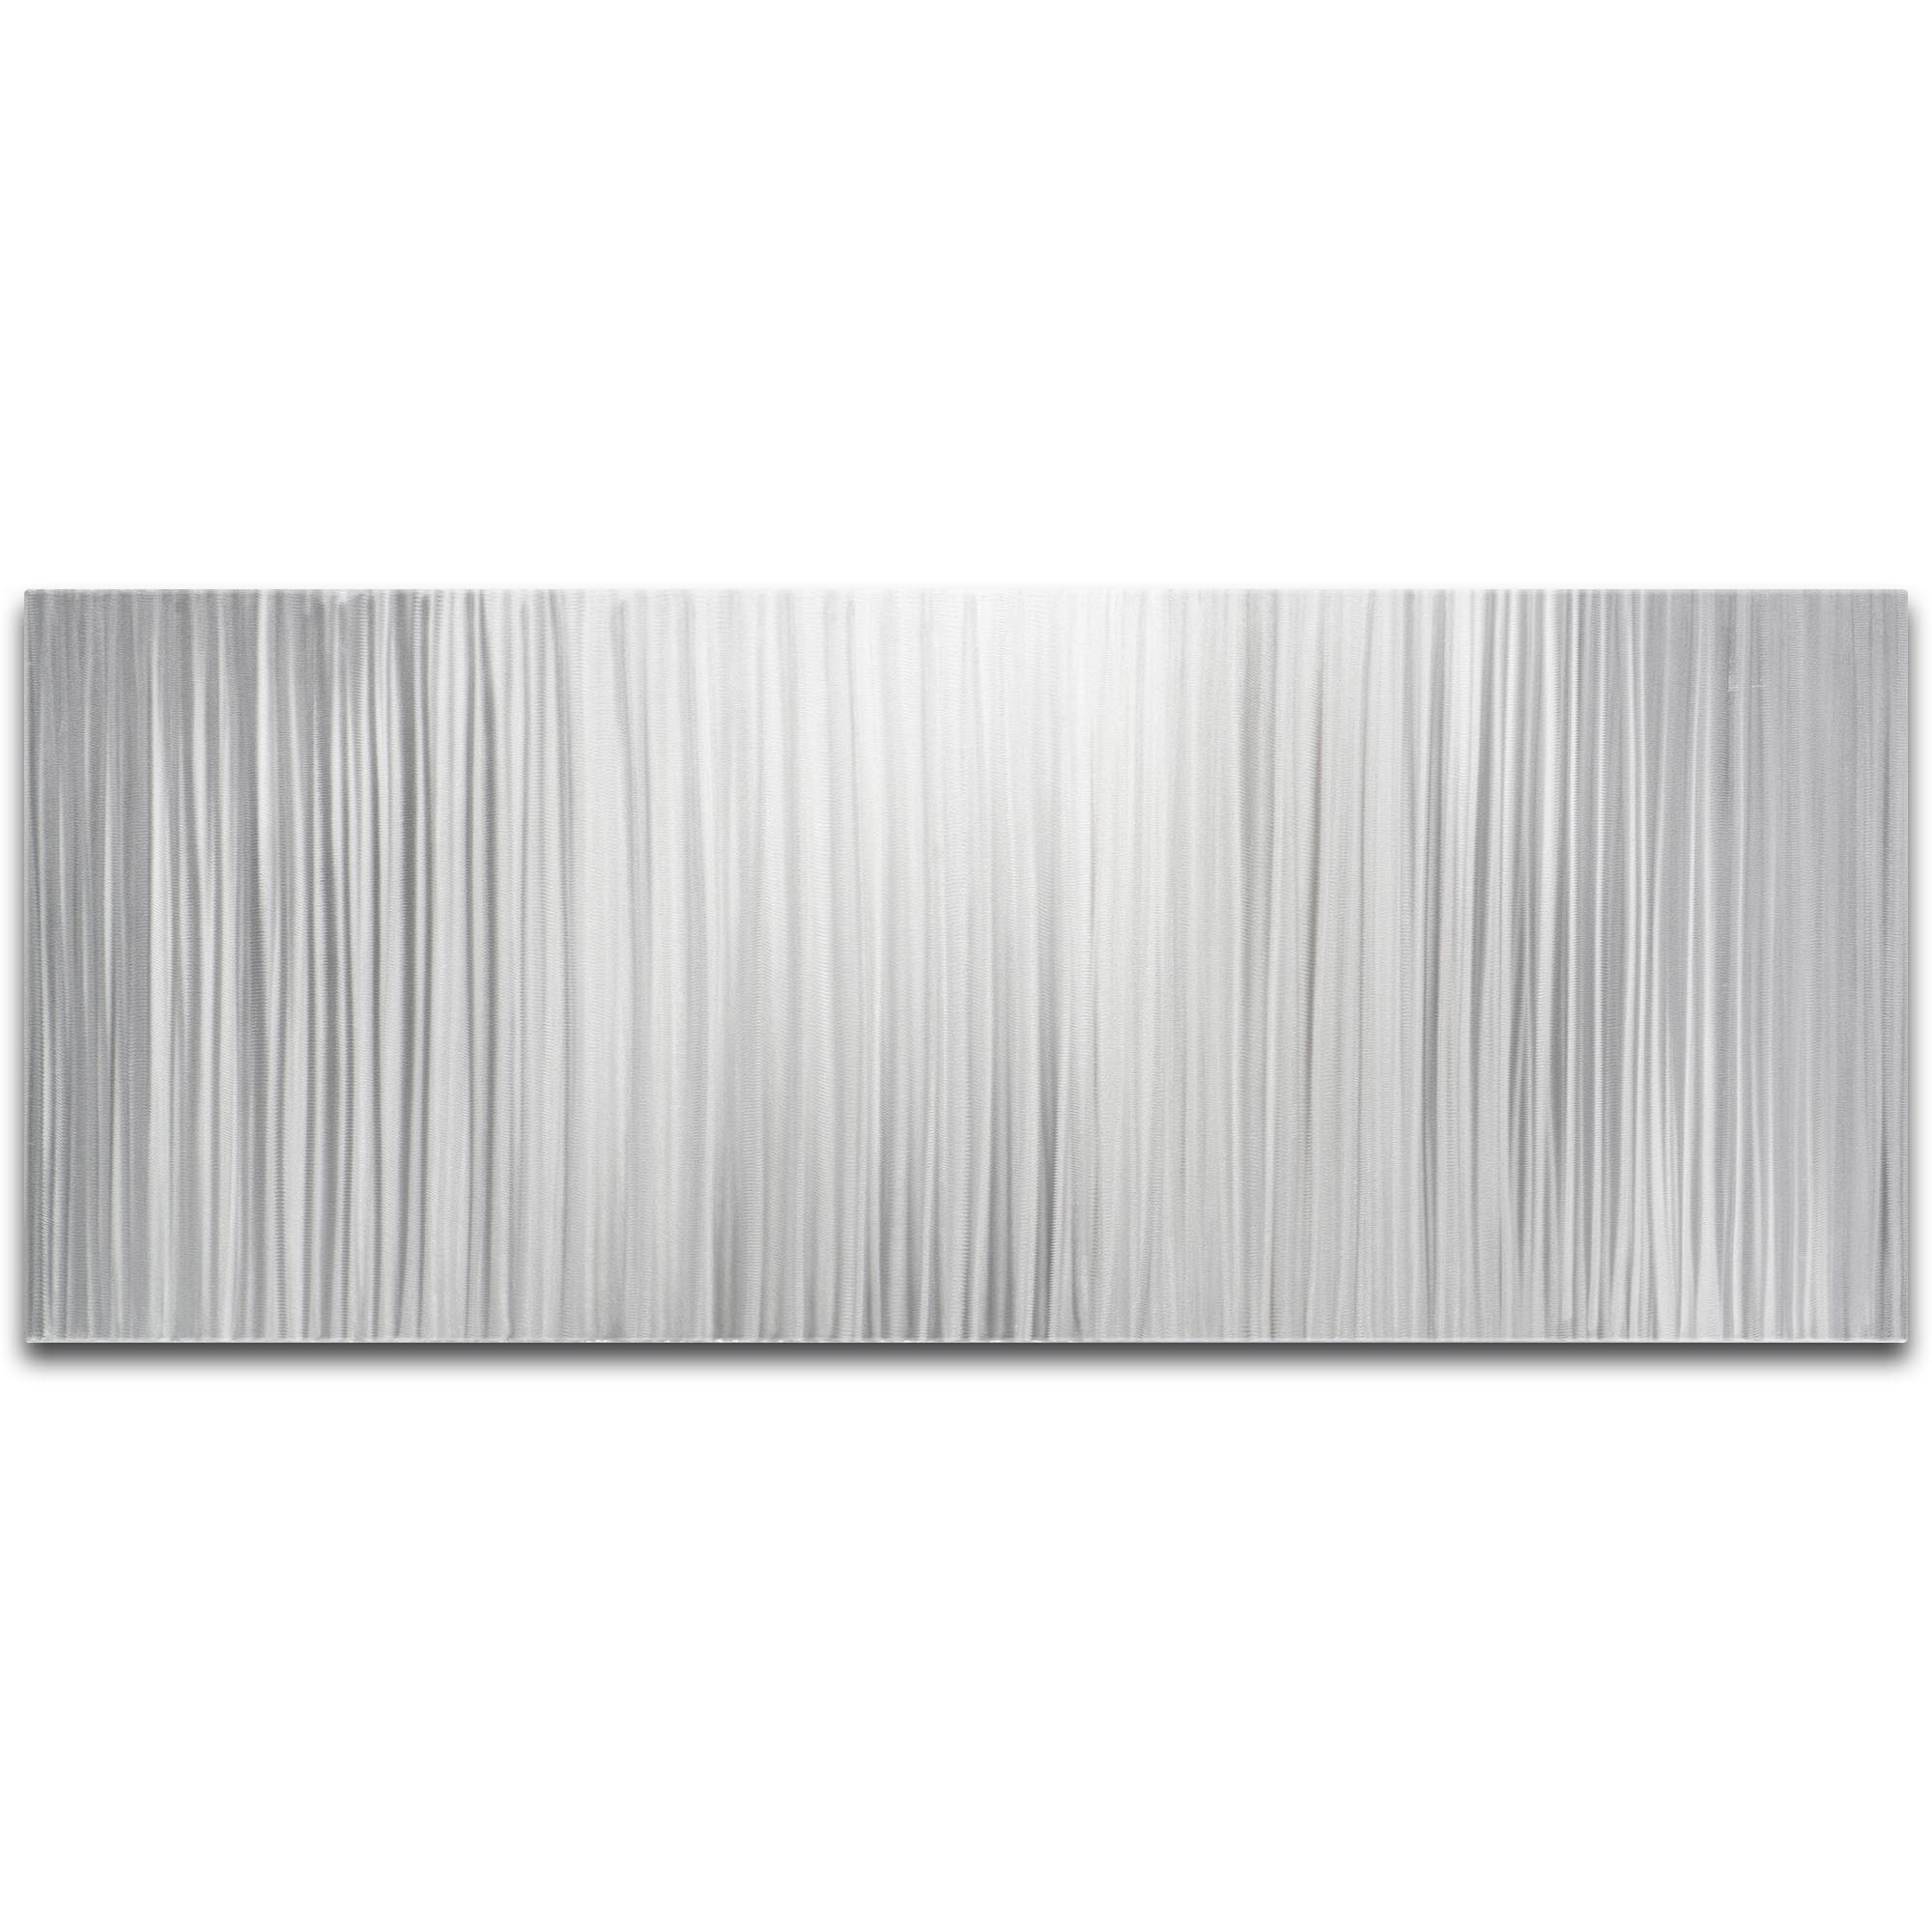 Helena Martin 'Silver Lines' 48in x 19in Original Abstract Metal Art on Ground Metal